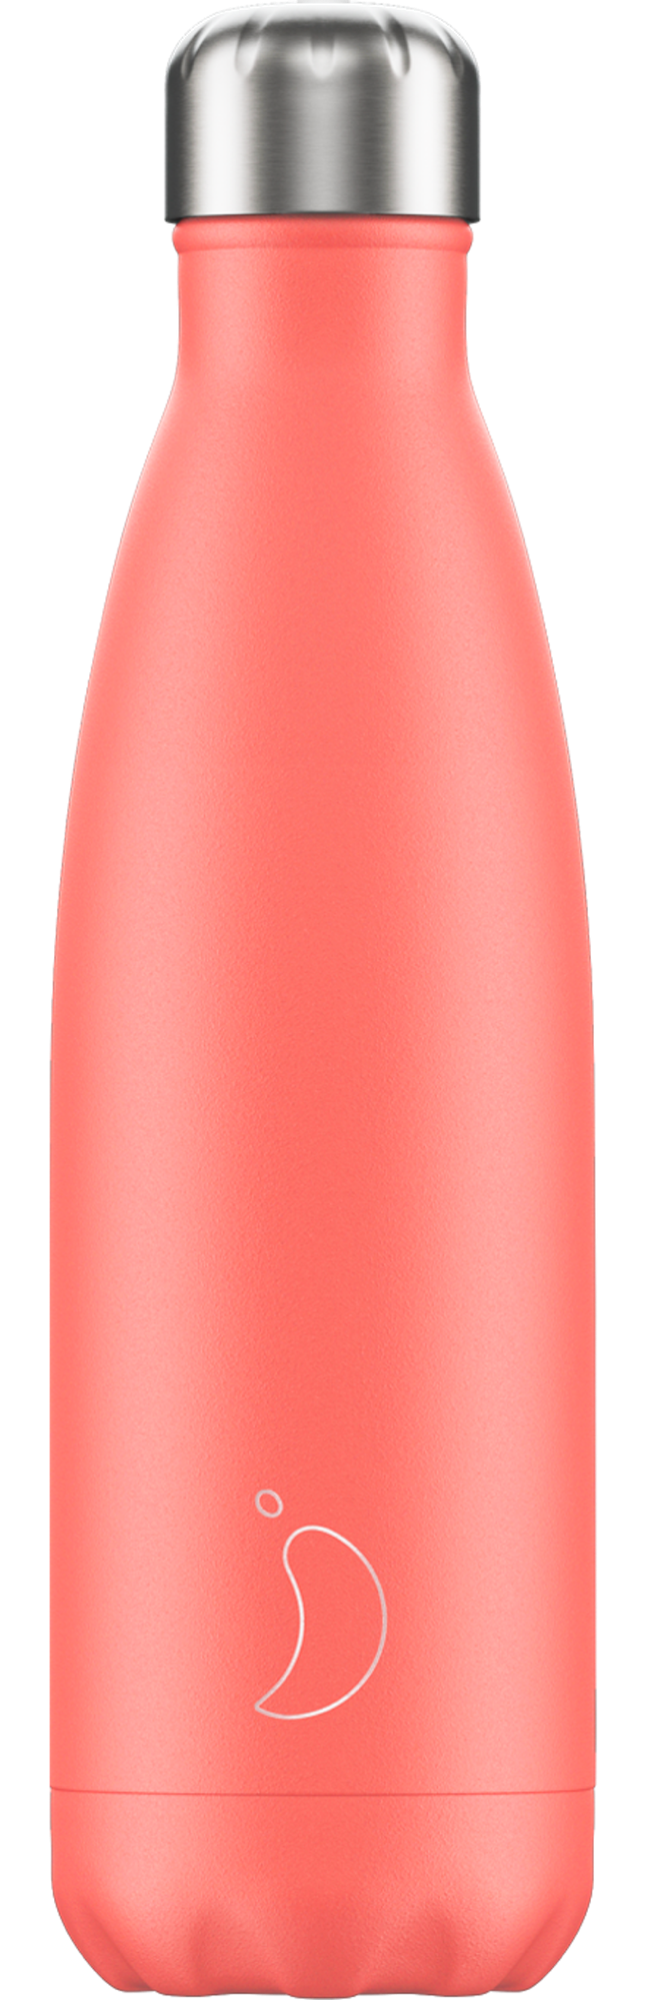 CHILLY'S BOTTLE 500ML - [PASTEL] CORAL